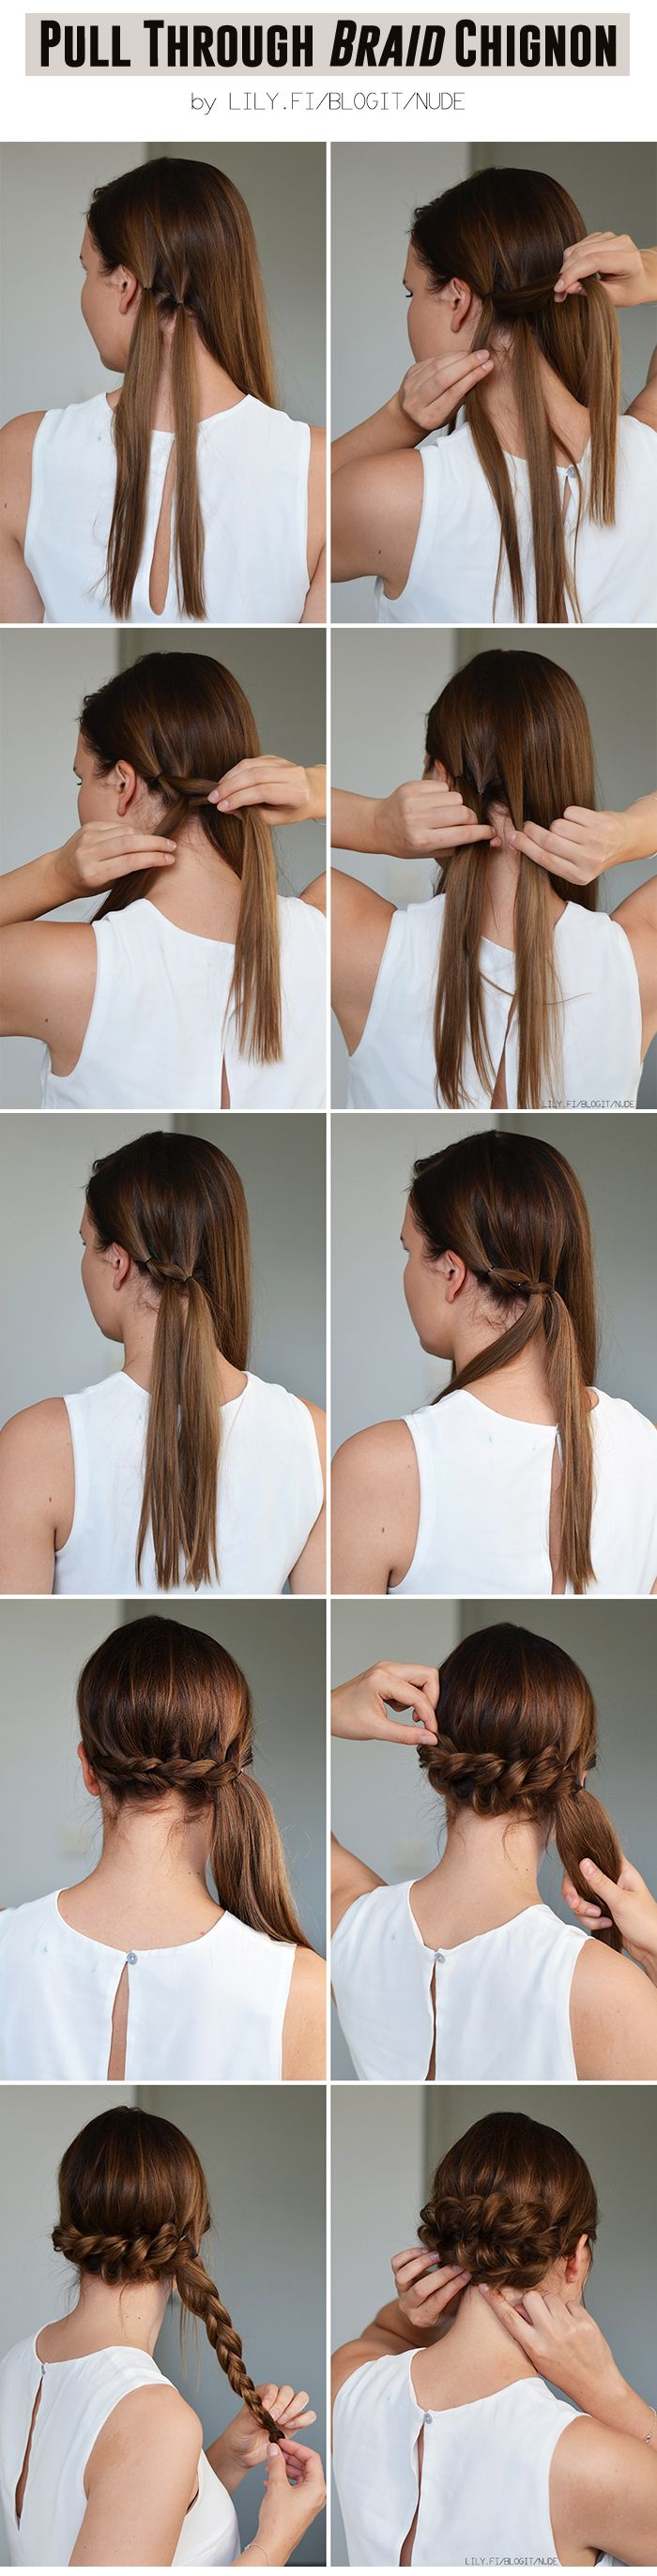 Pull Through Braid Chignon